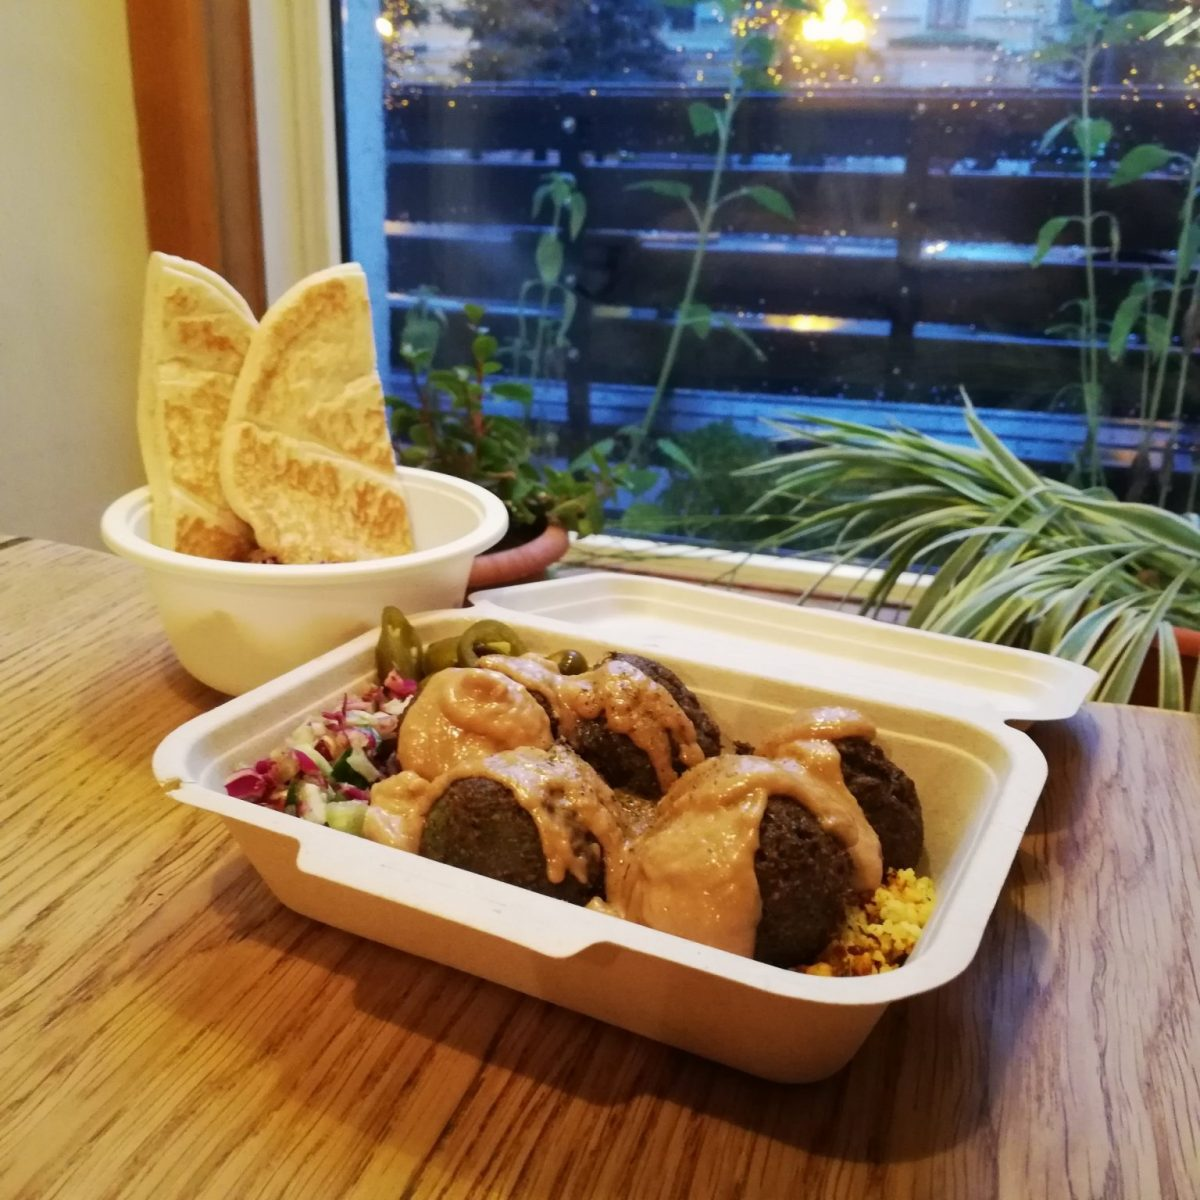 Falafel and hummus are pretty common vegan foods in Russia